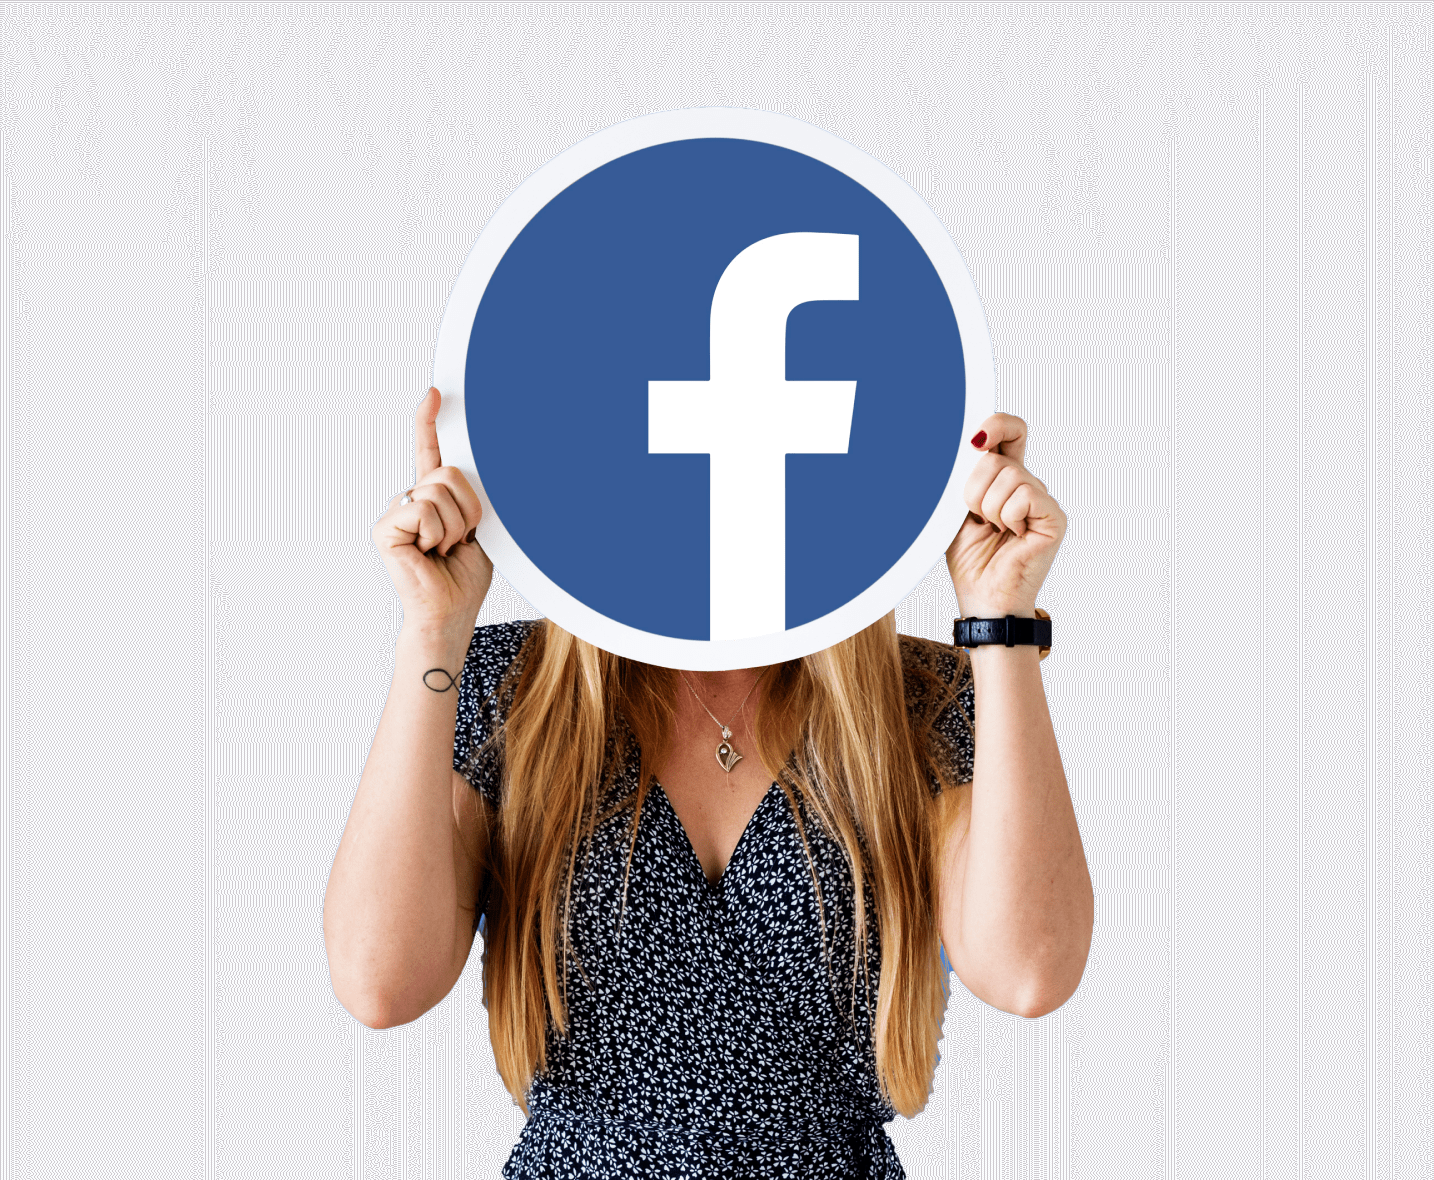 Woman holding the Facebook logo in front of her face